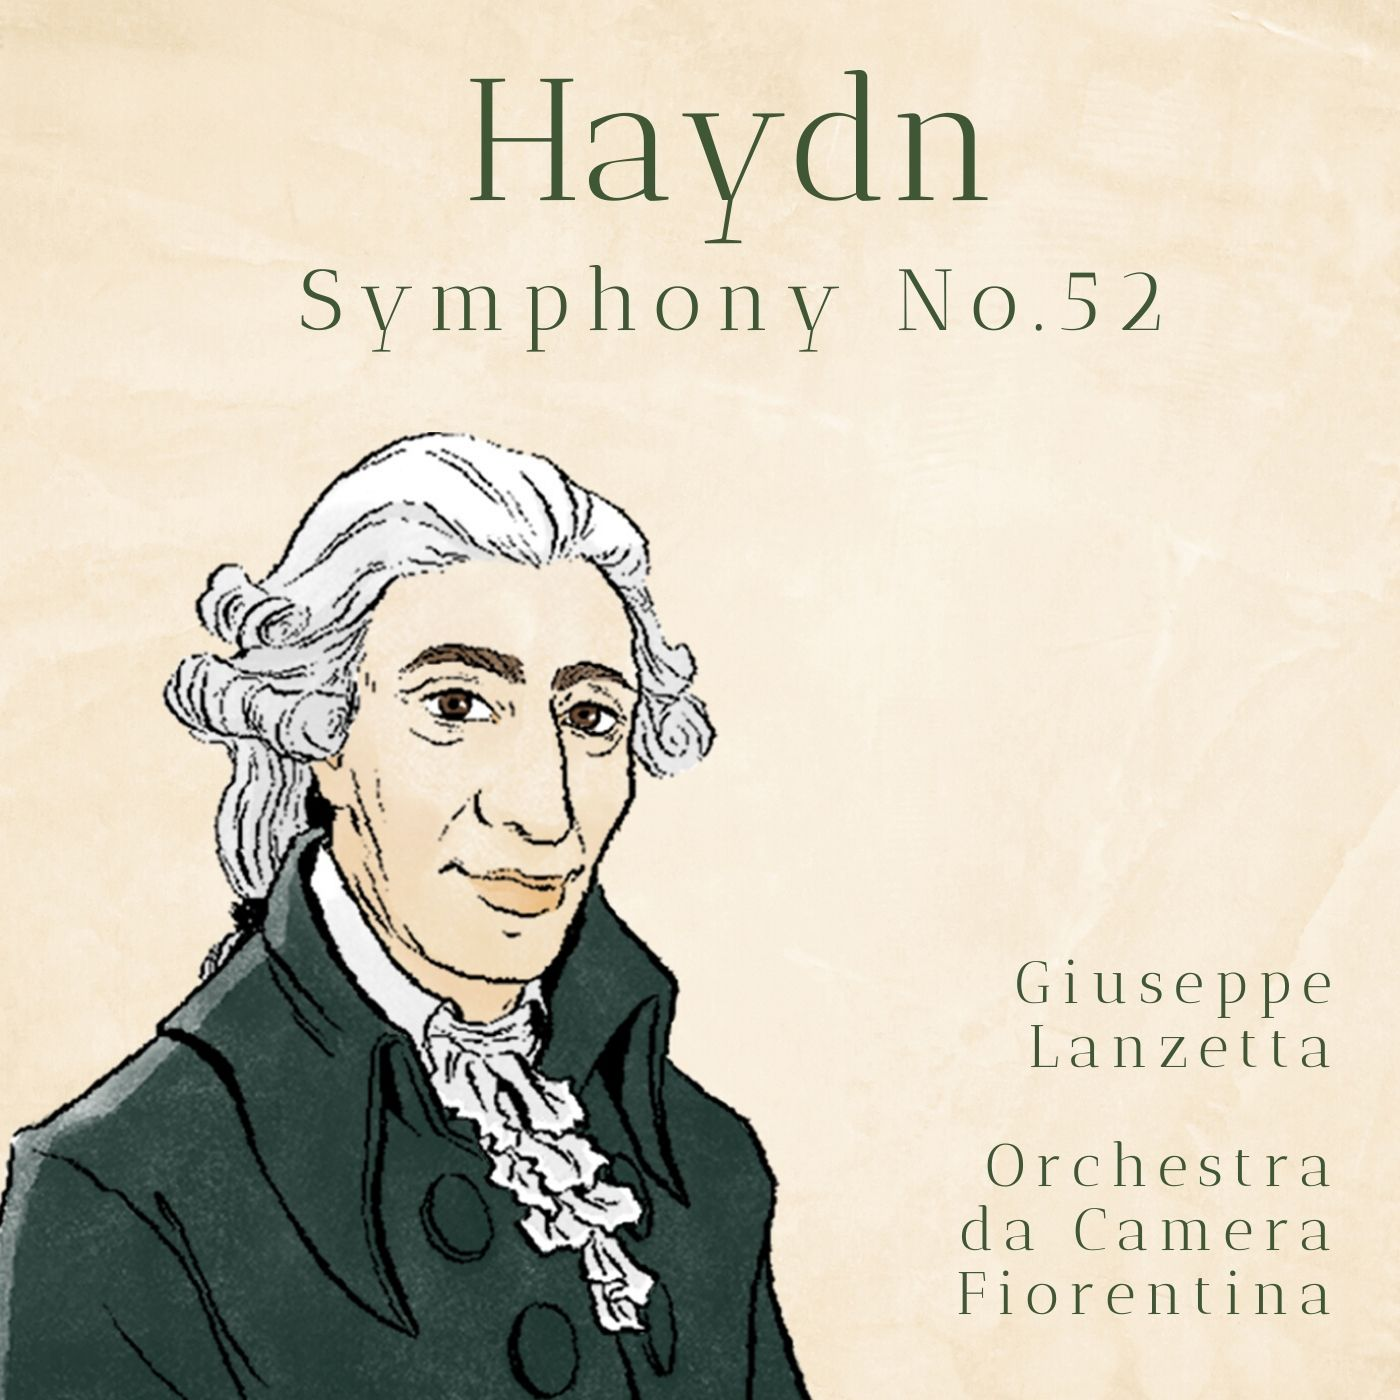 Haydn: Symphony No. 52 in C minor